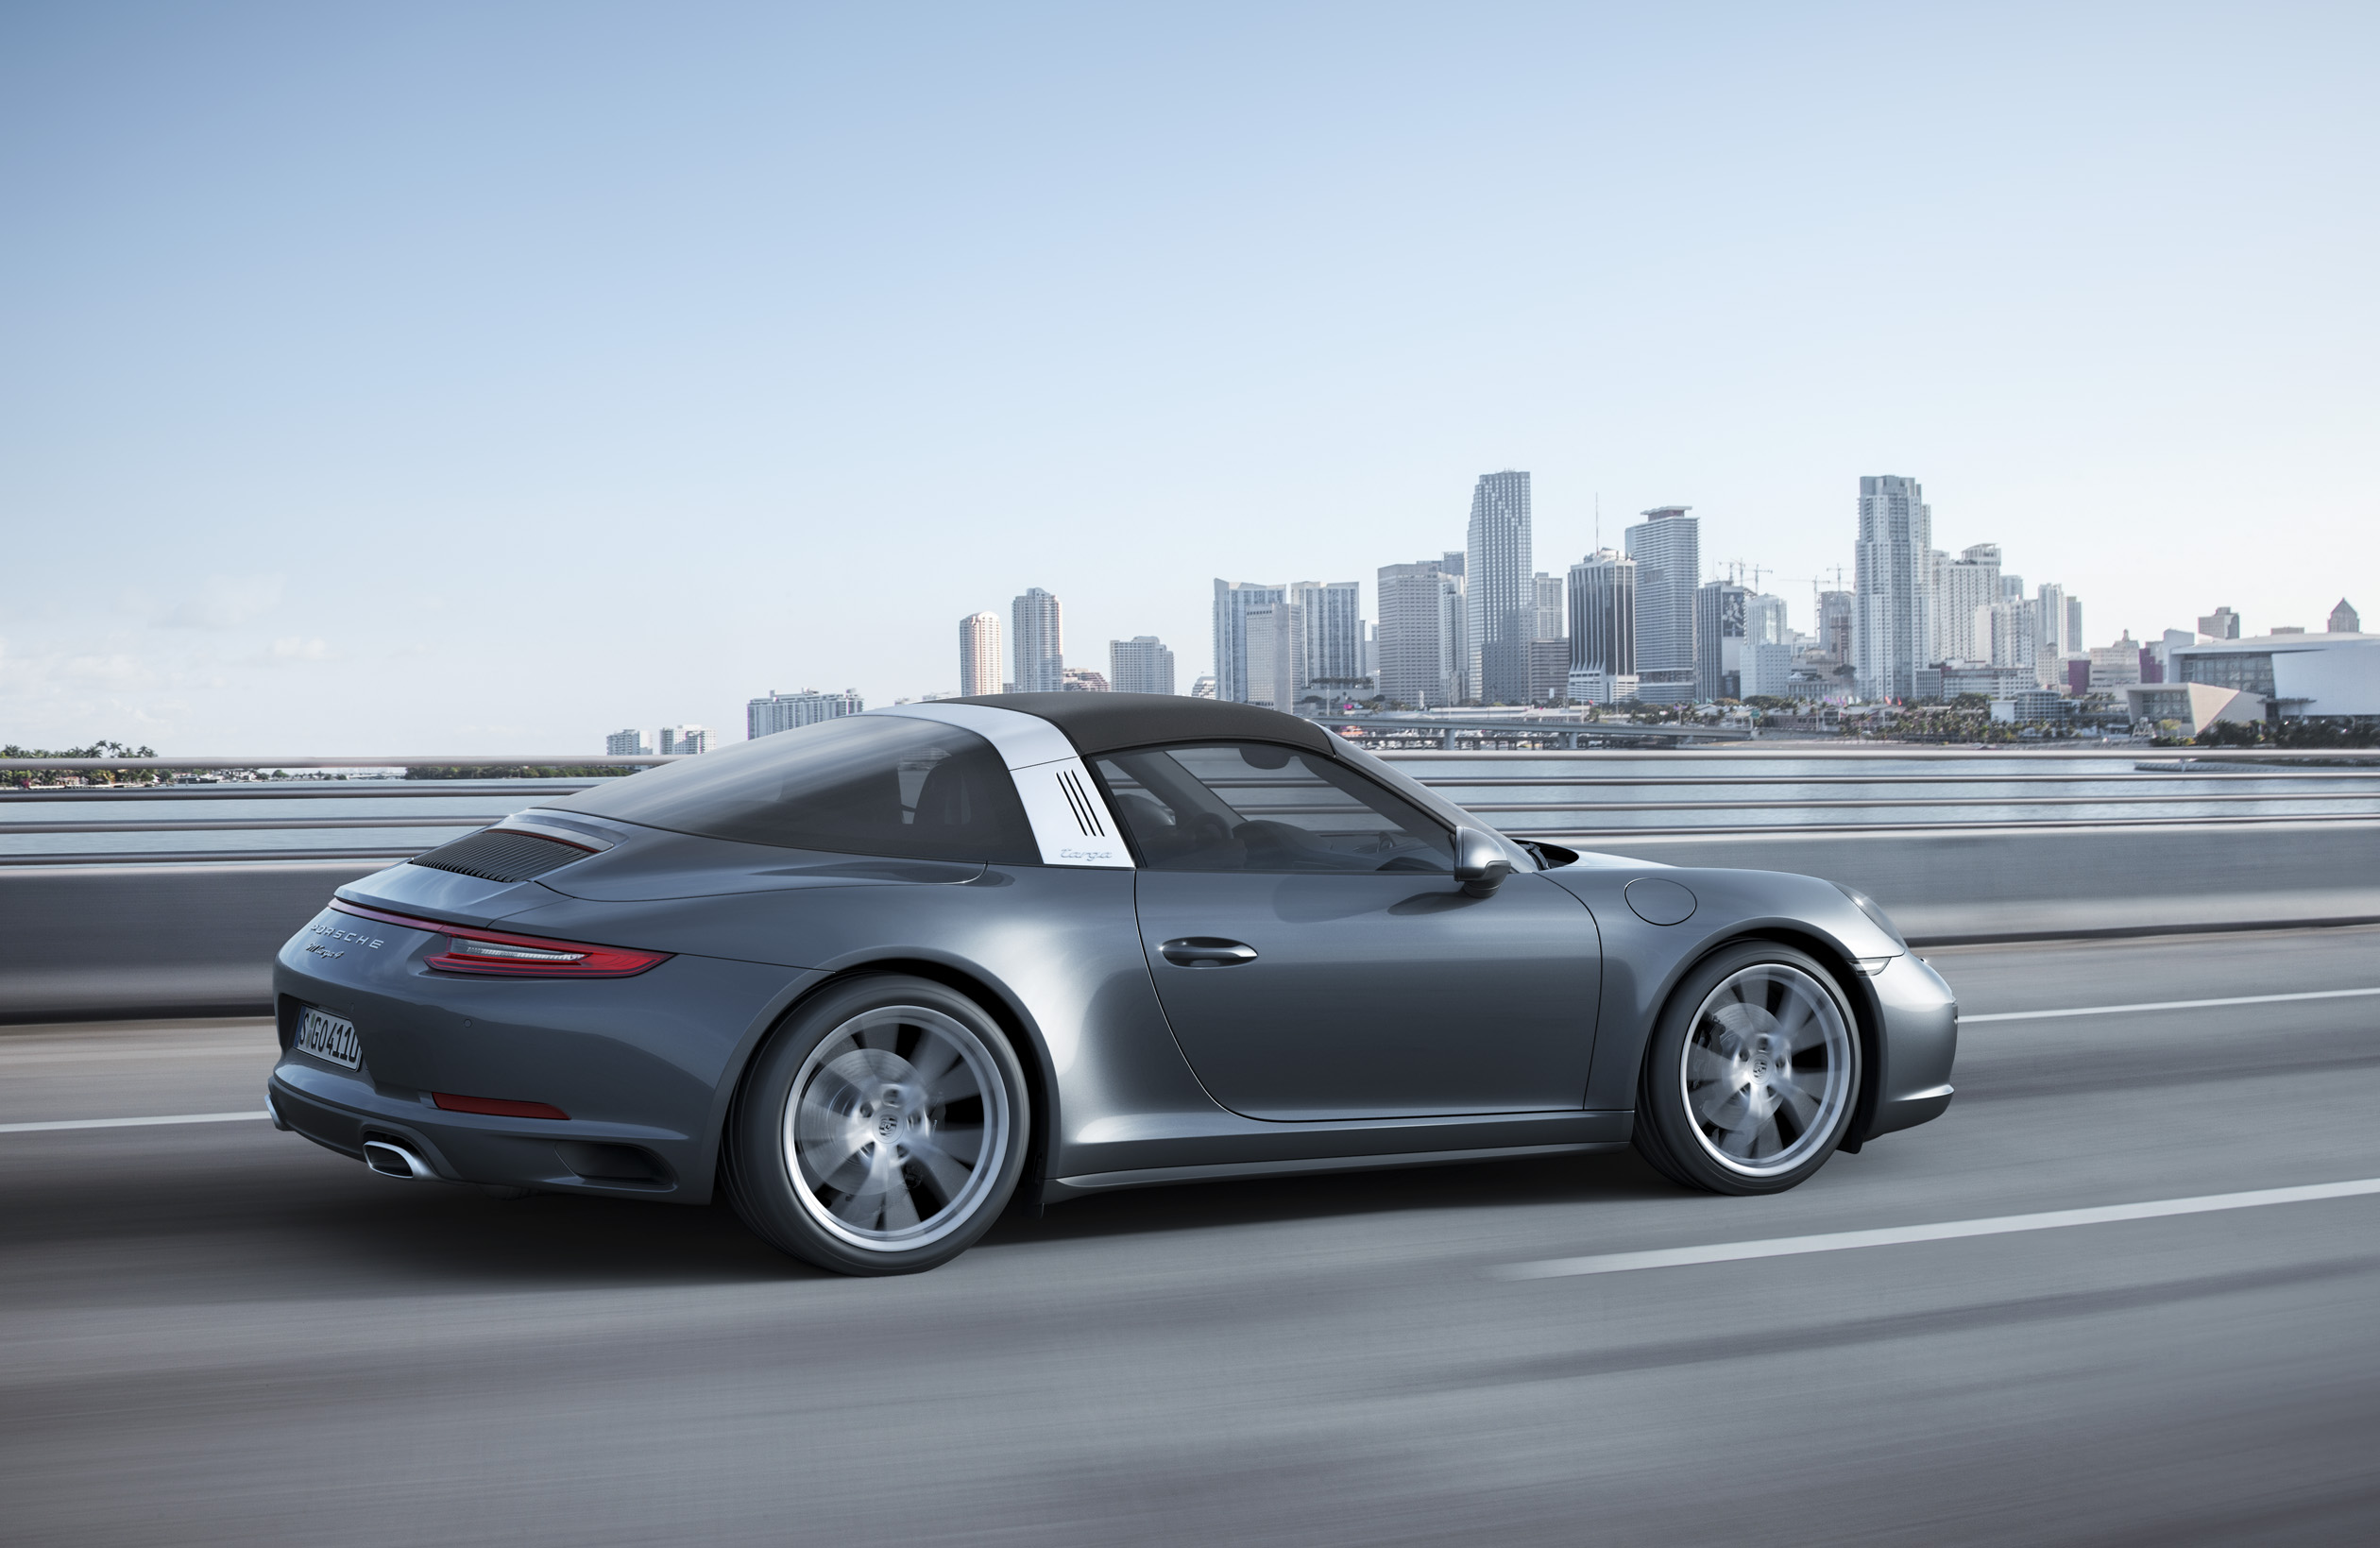 Exceptional Traction For Greater Performance The Porsche